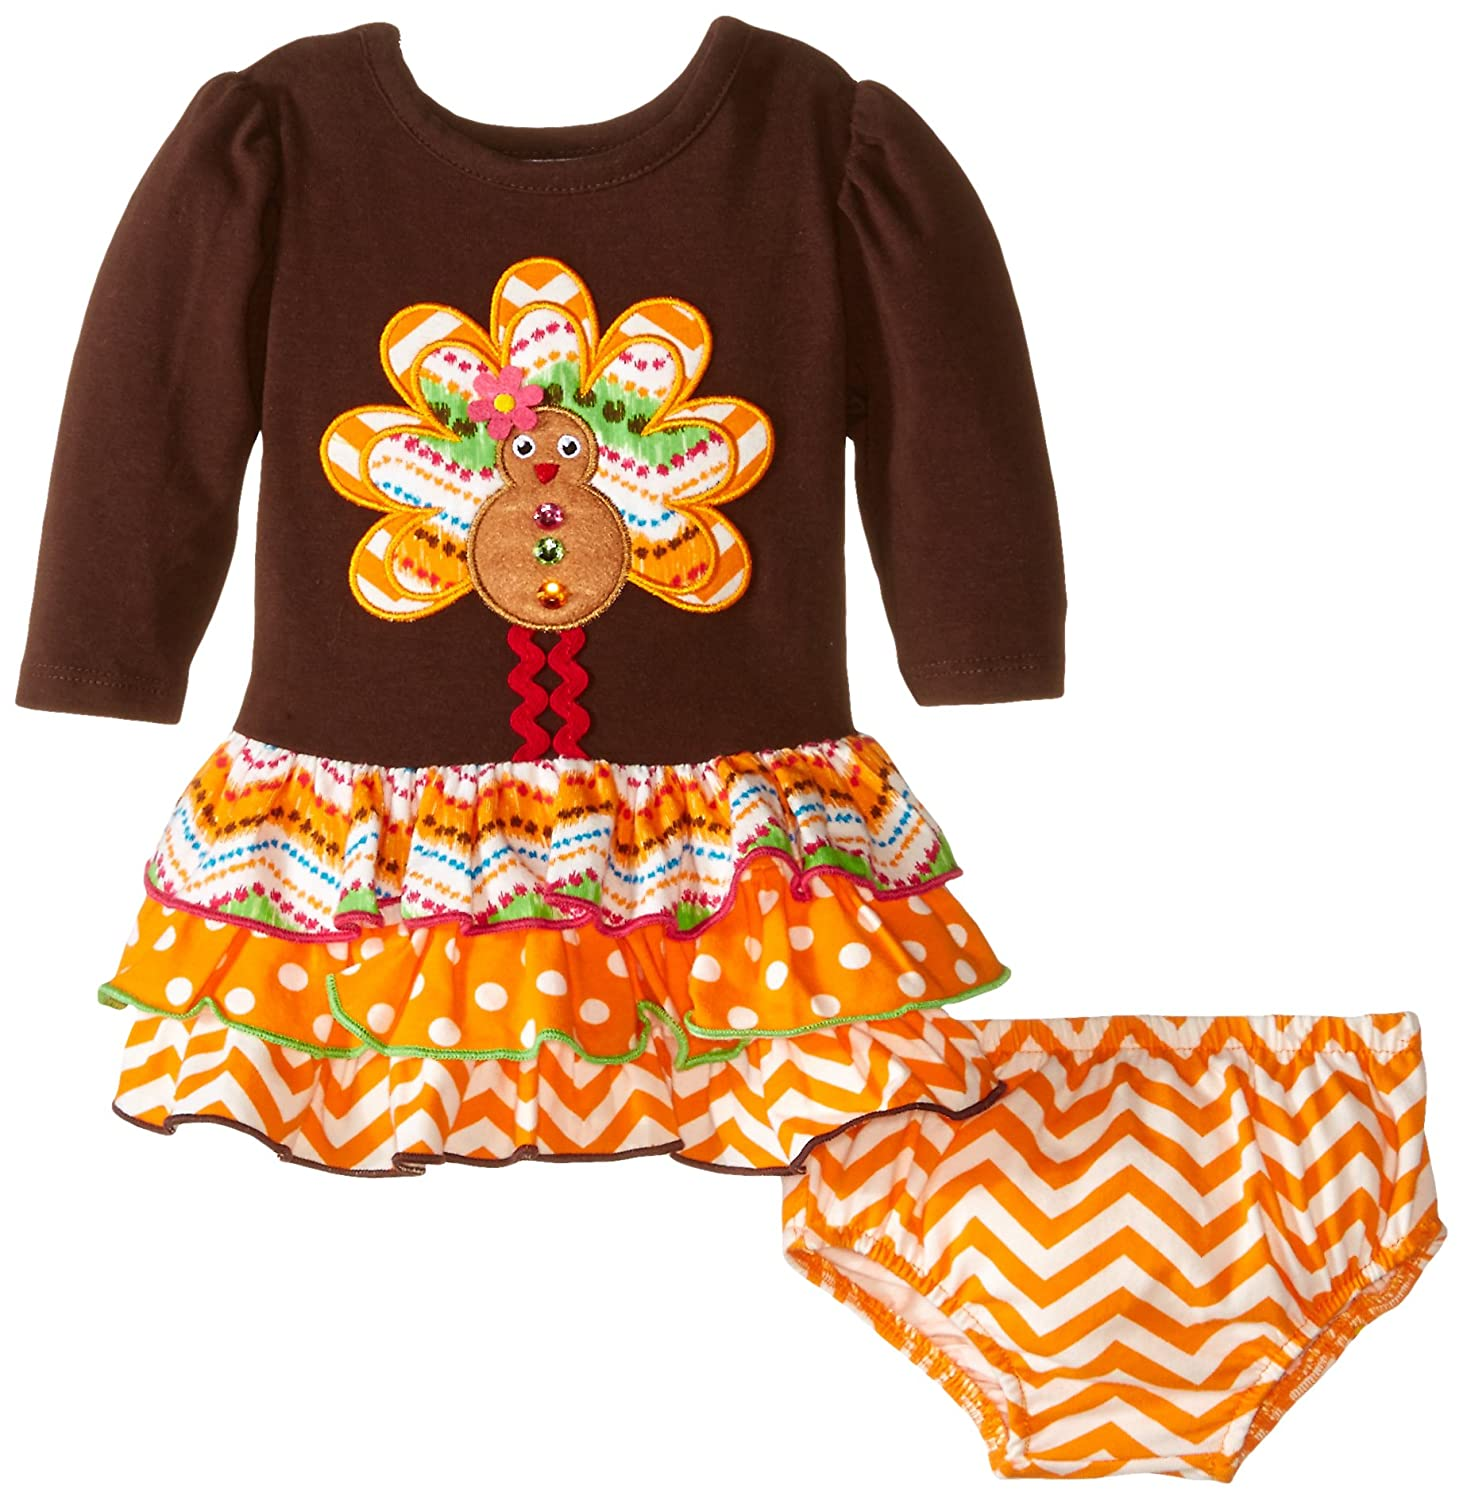 0b43484fdae53 Bonnie Baby Girls   Gingerbread Turkeyアップリケドレス 3 - 6 Months ブラウン B010PLTU3G